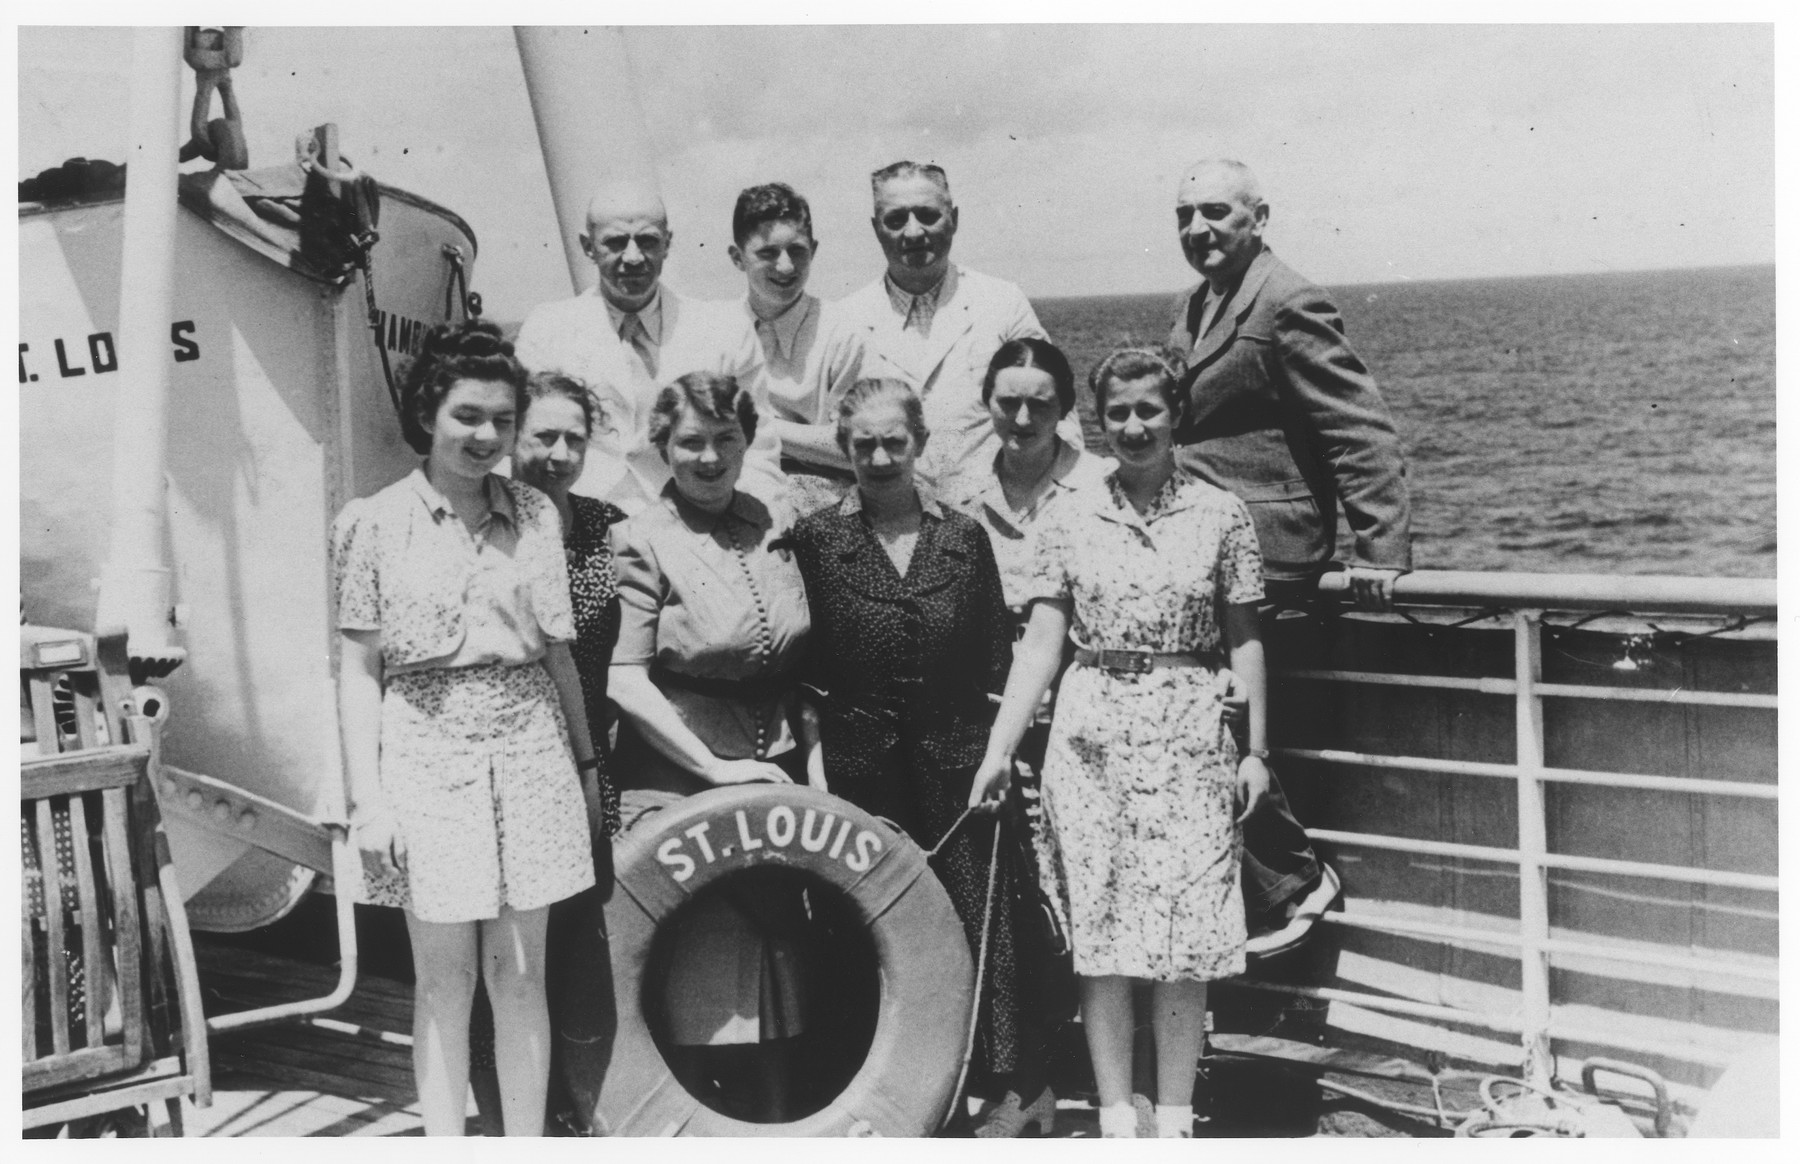 Members of the extended Heilbrun family on board the MS St. Louis.  Pictured in the front row from left to right are: Inge Heilbrun, Grete Heilbrun, Berna Heilbrun, Emma David, and Johanna Heilbrun.  In the back row are Bruno Heilbrun, Guenther Heilbrun, Norbert Heilbrun and Leon Heilbrun.